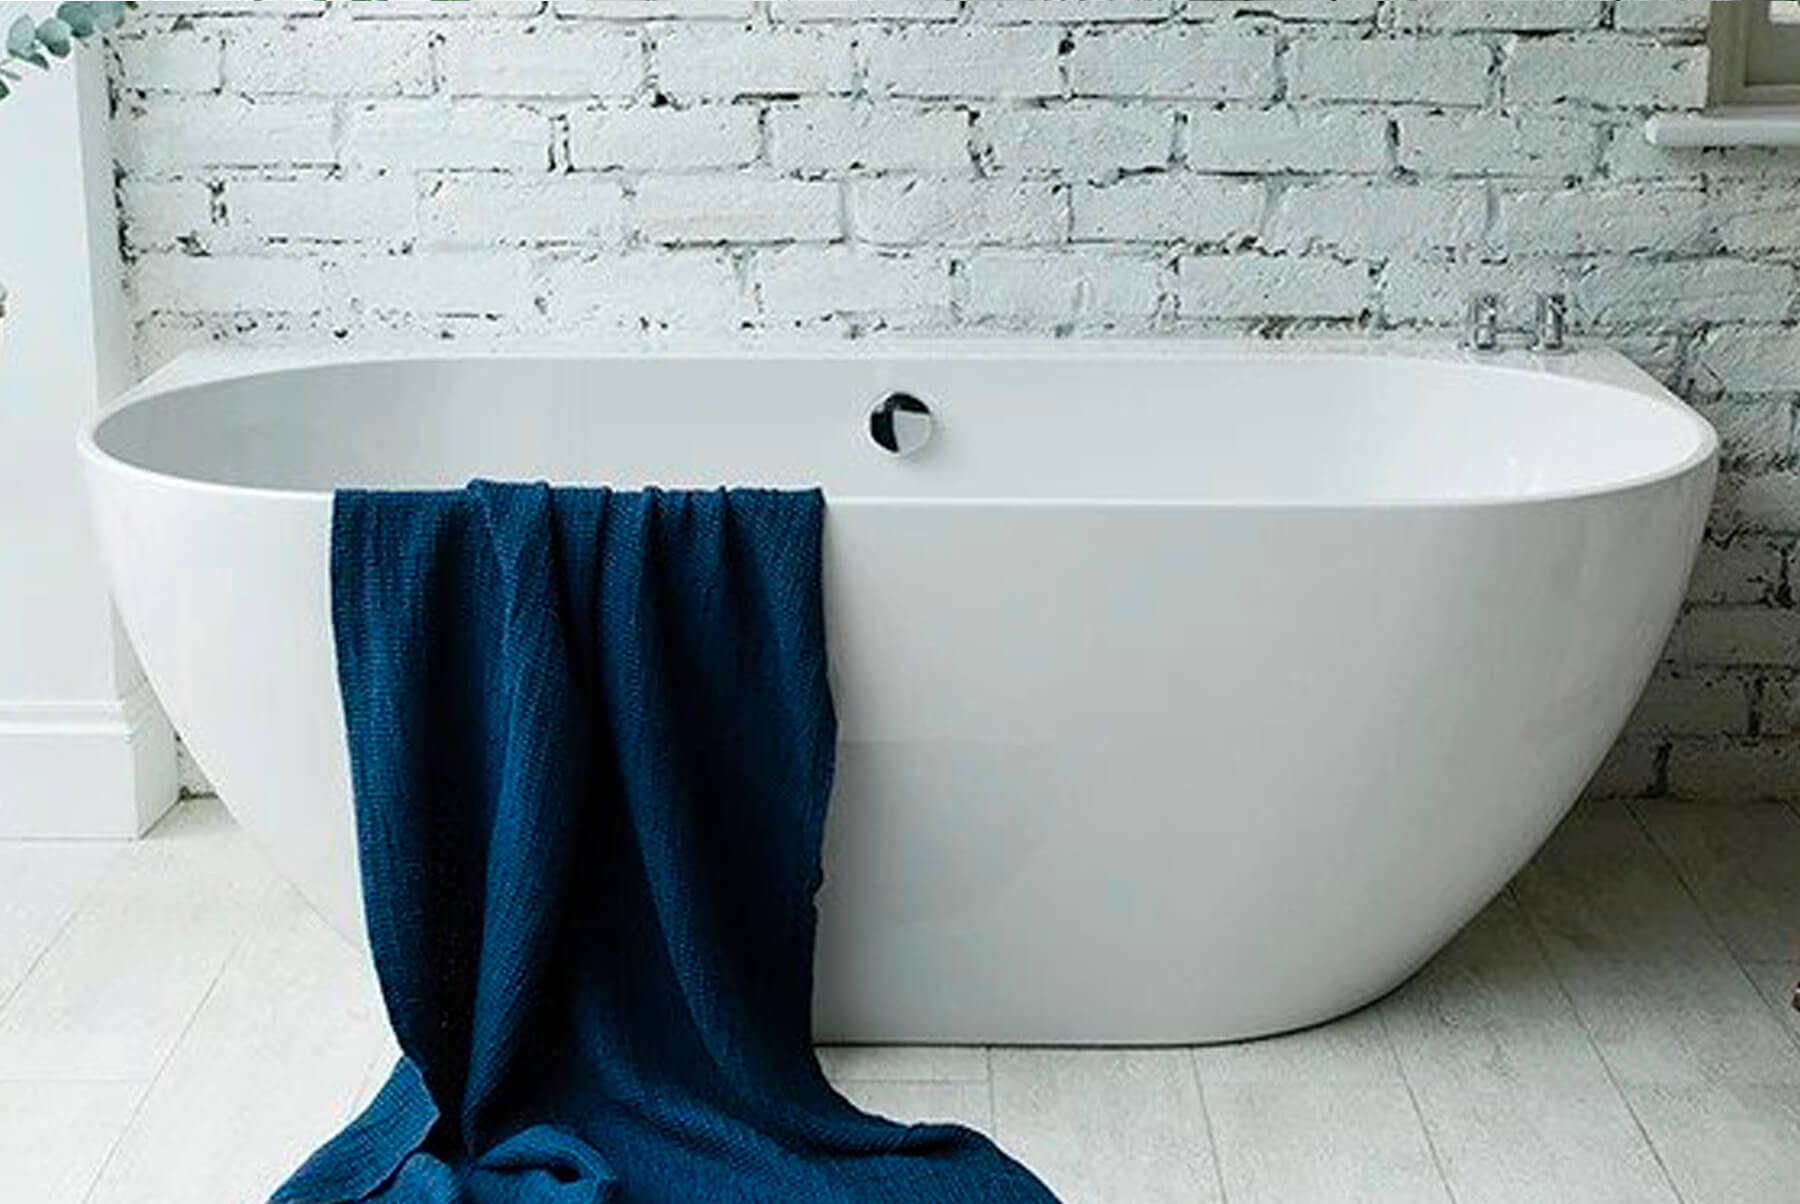 Bath-Tubs-WATERS-LOCHE-BTW-LIFESTYLE-FRONT-1800x1204